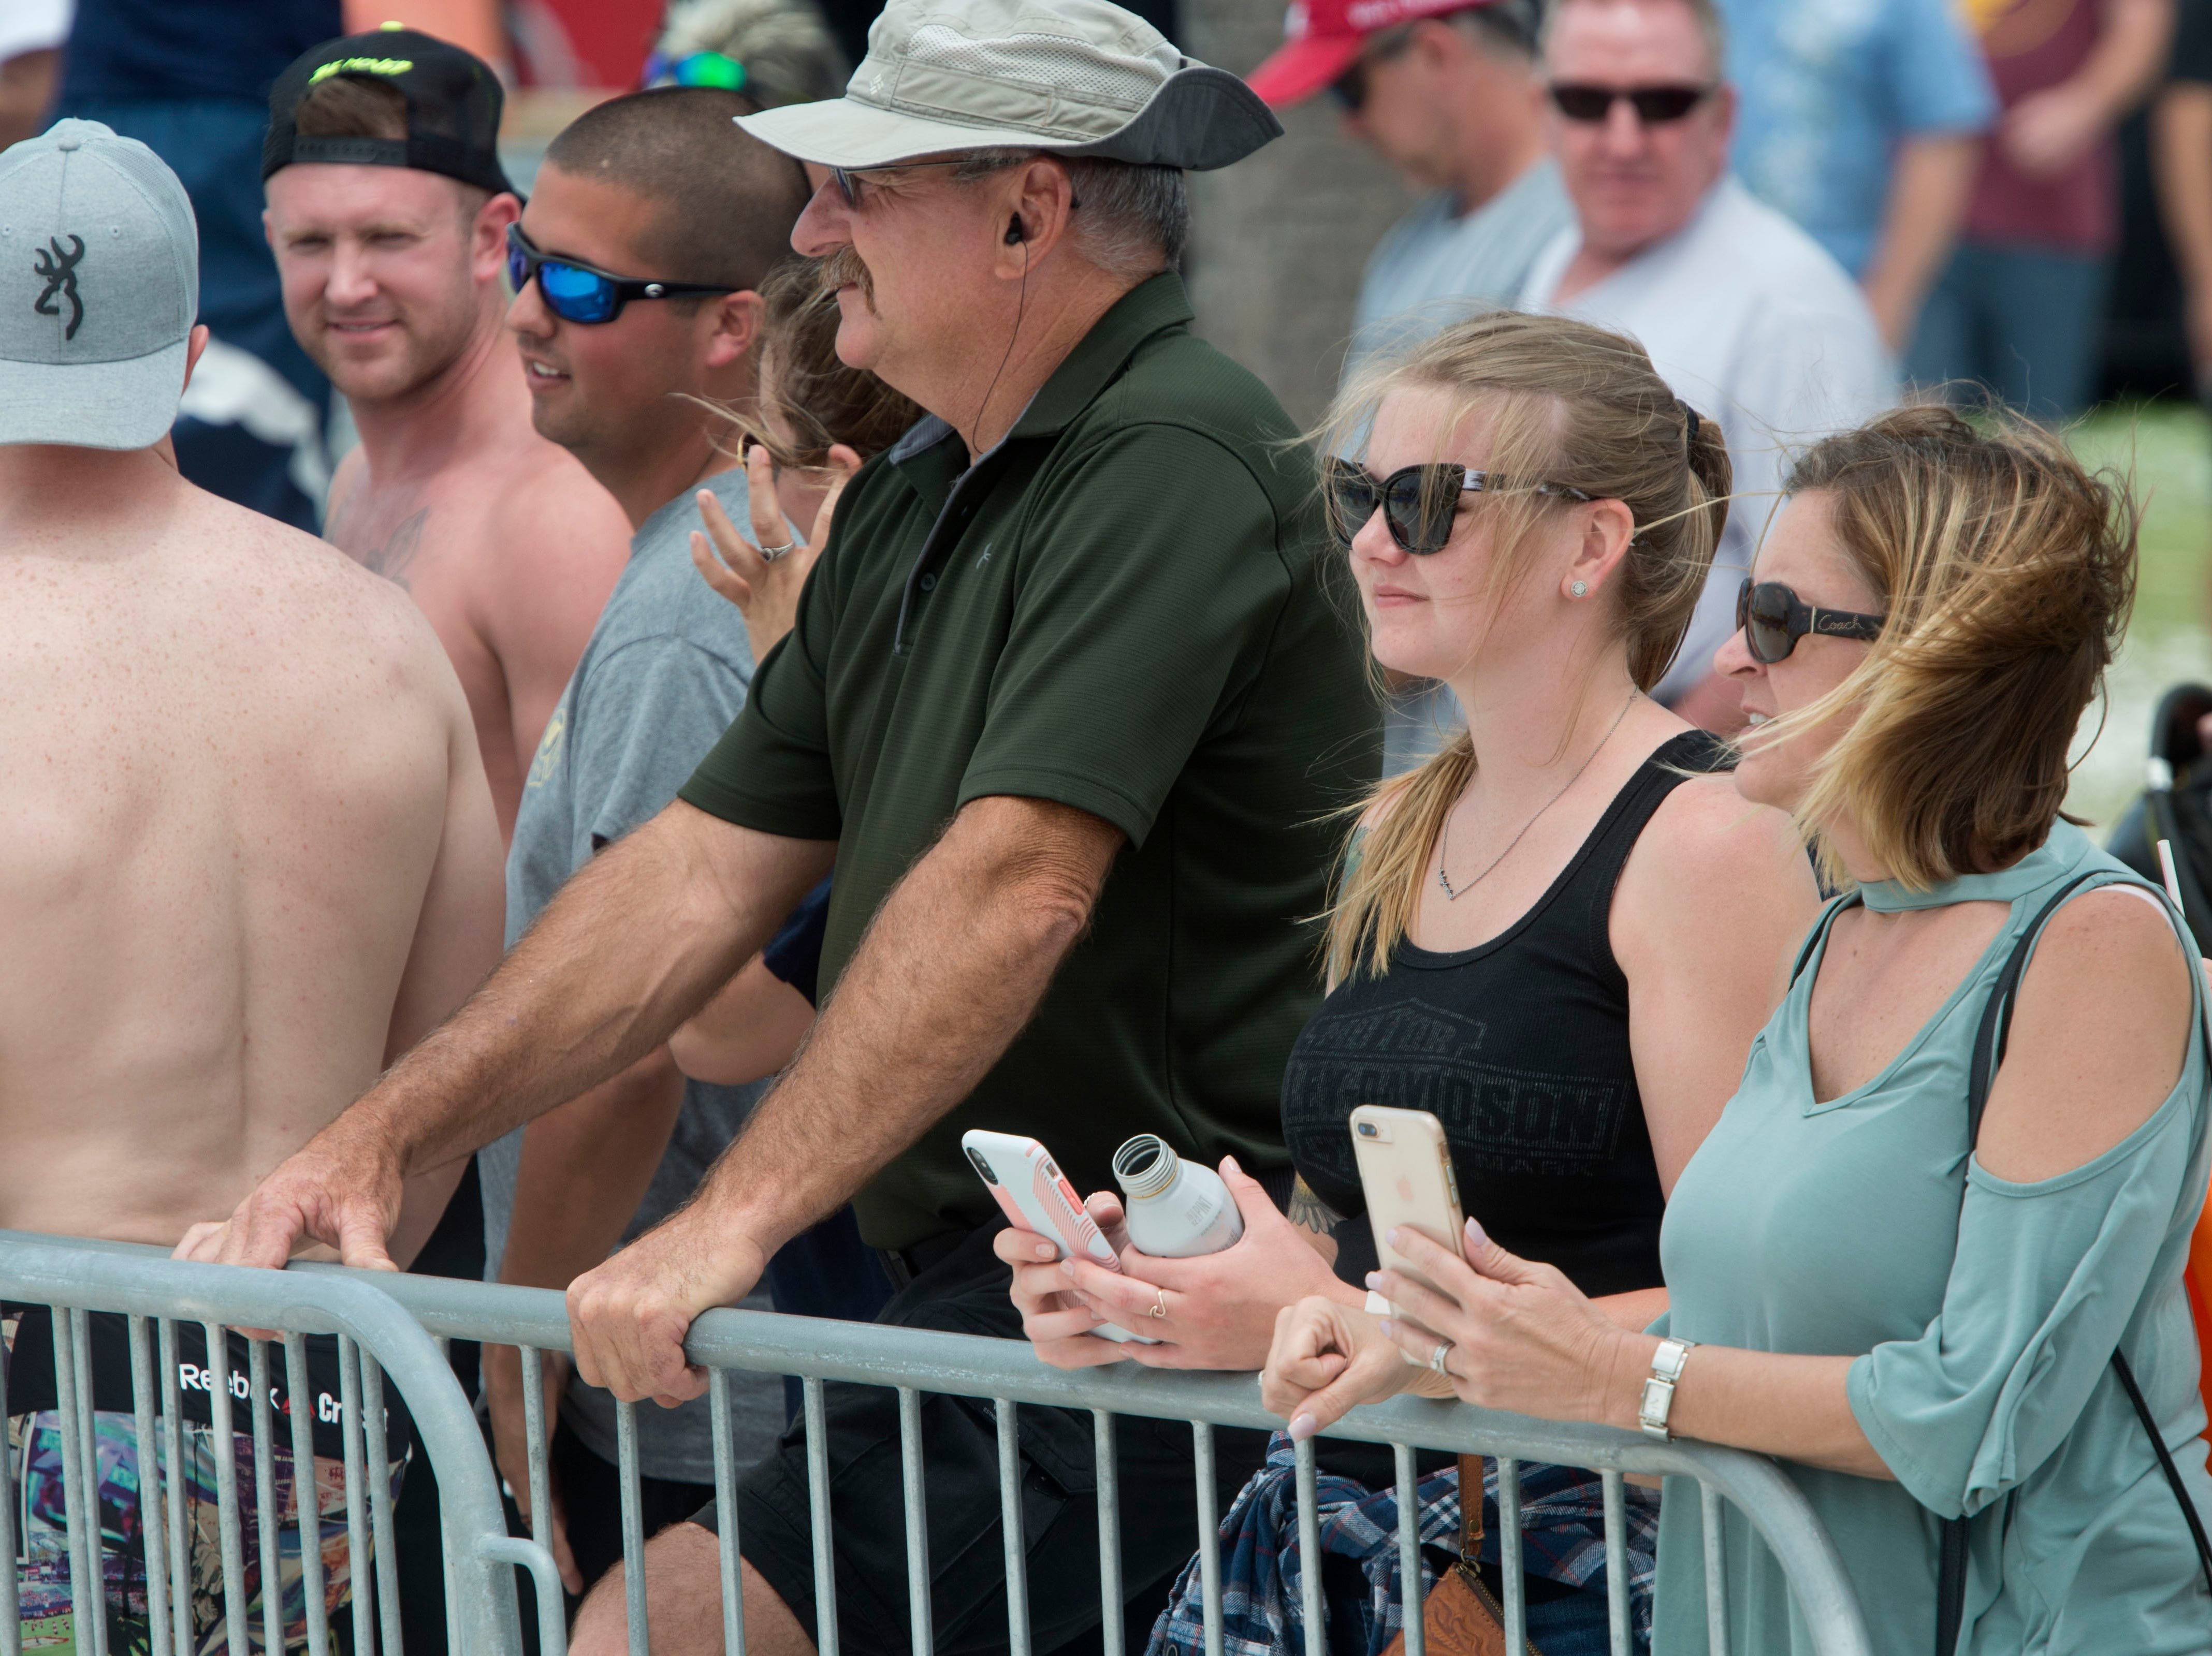 The crowd checks out firefighters competing during the fifth annual Pensacola Beach Firefighters Challenge. The event tested the strength, agility, teamwork, and skills of firefighters as well as provided a fun, family friendly event for participants and the public.